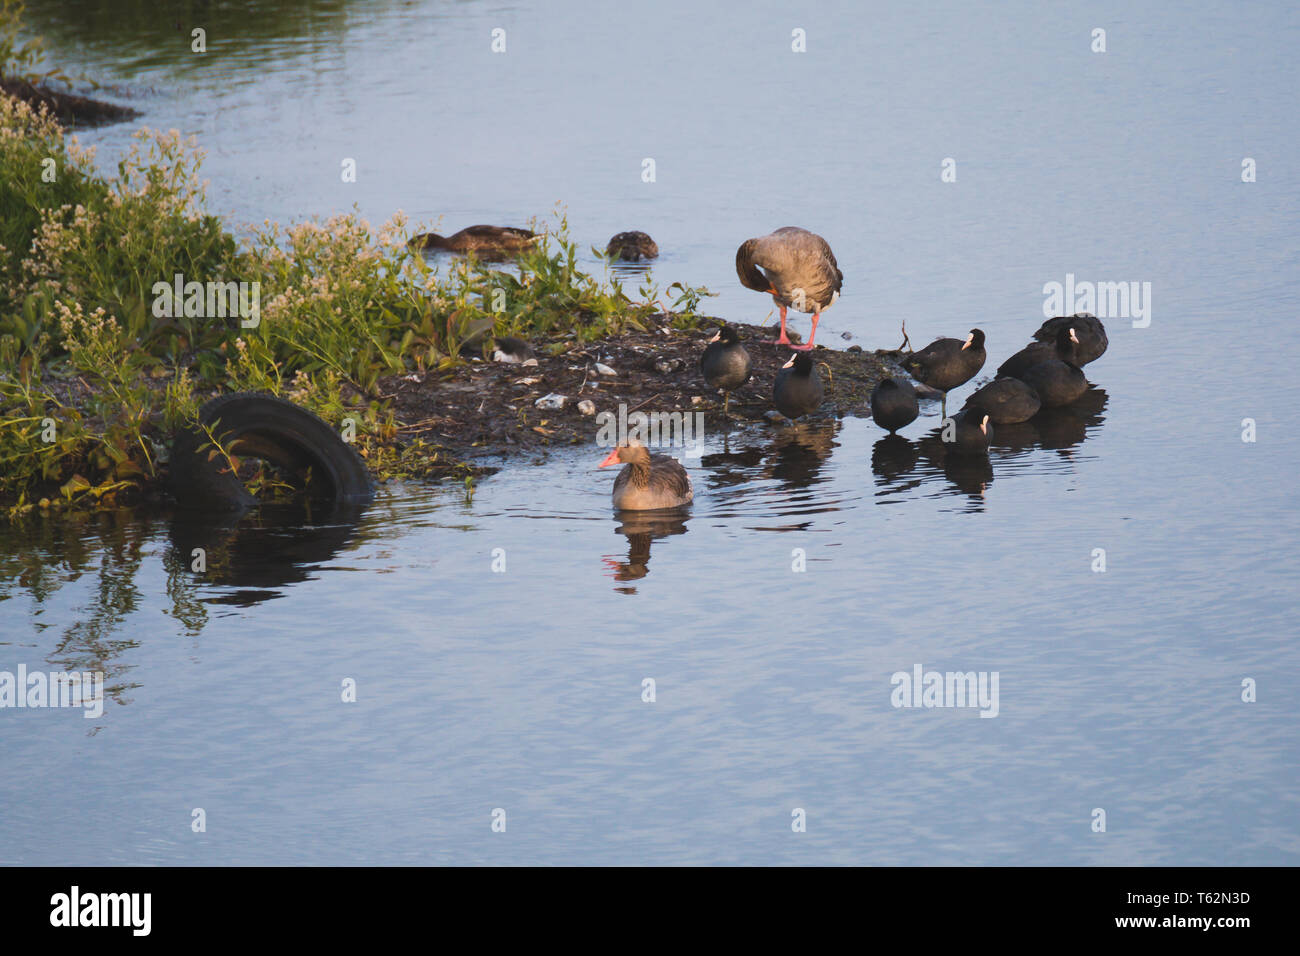 Gooses and Coots birds on side of cosat polution in water car tire Stock Photo